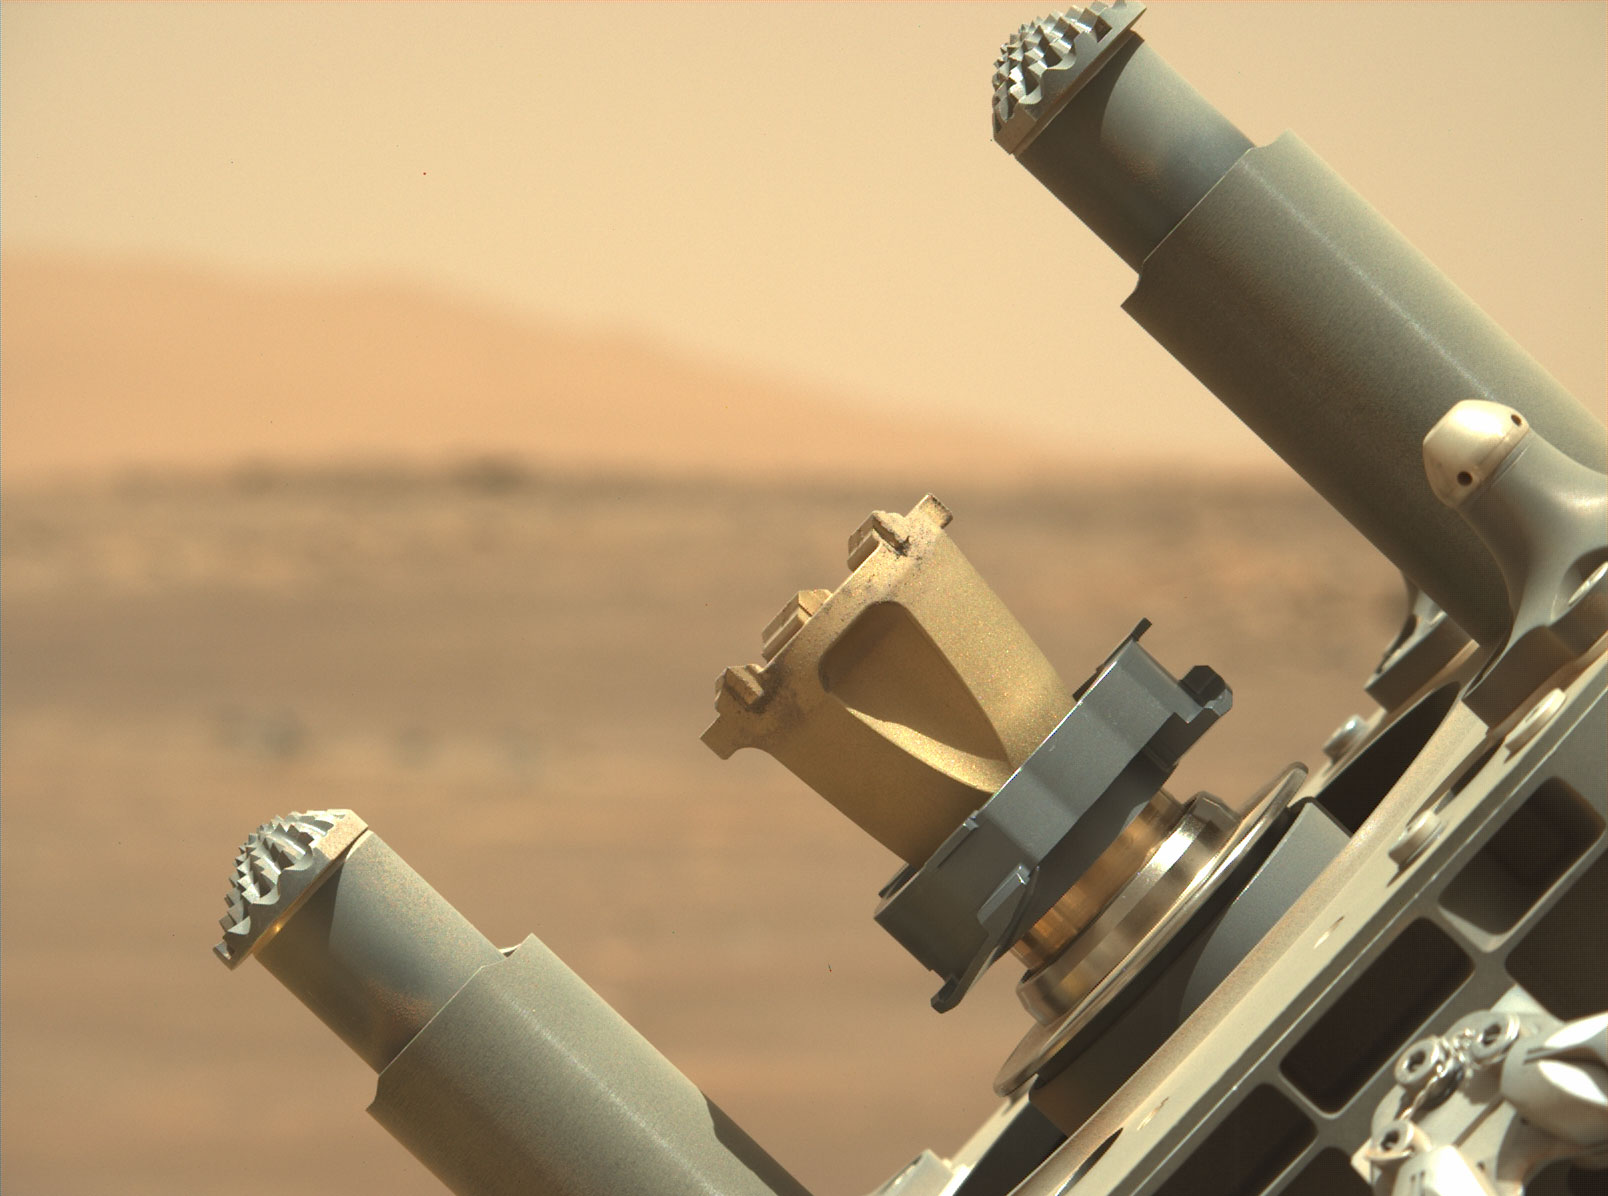 What's next for the rover?